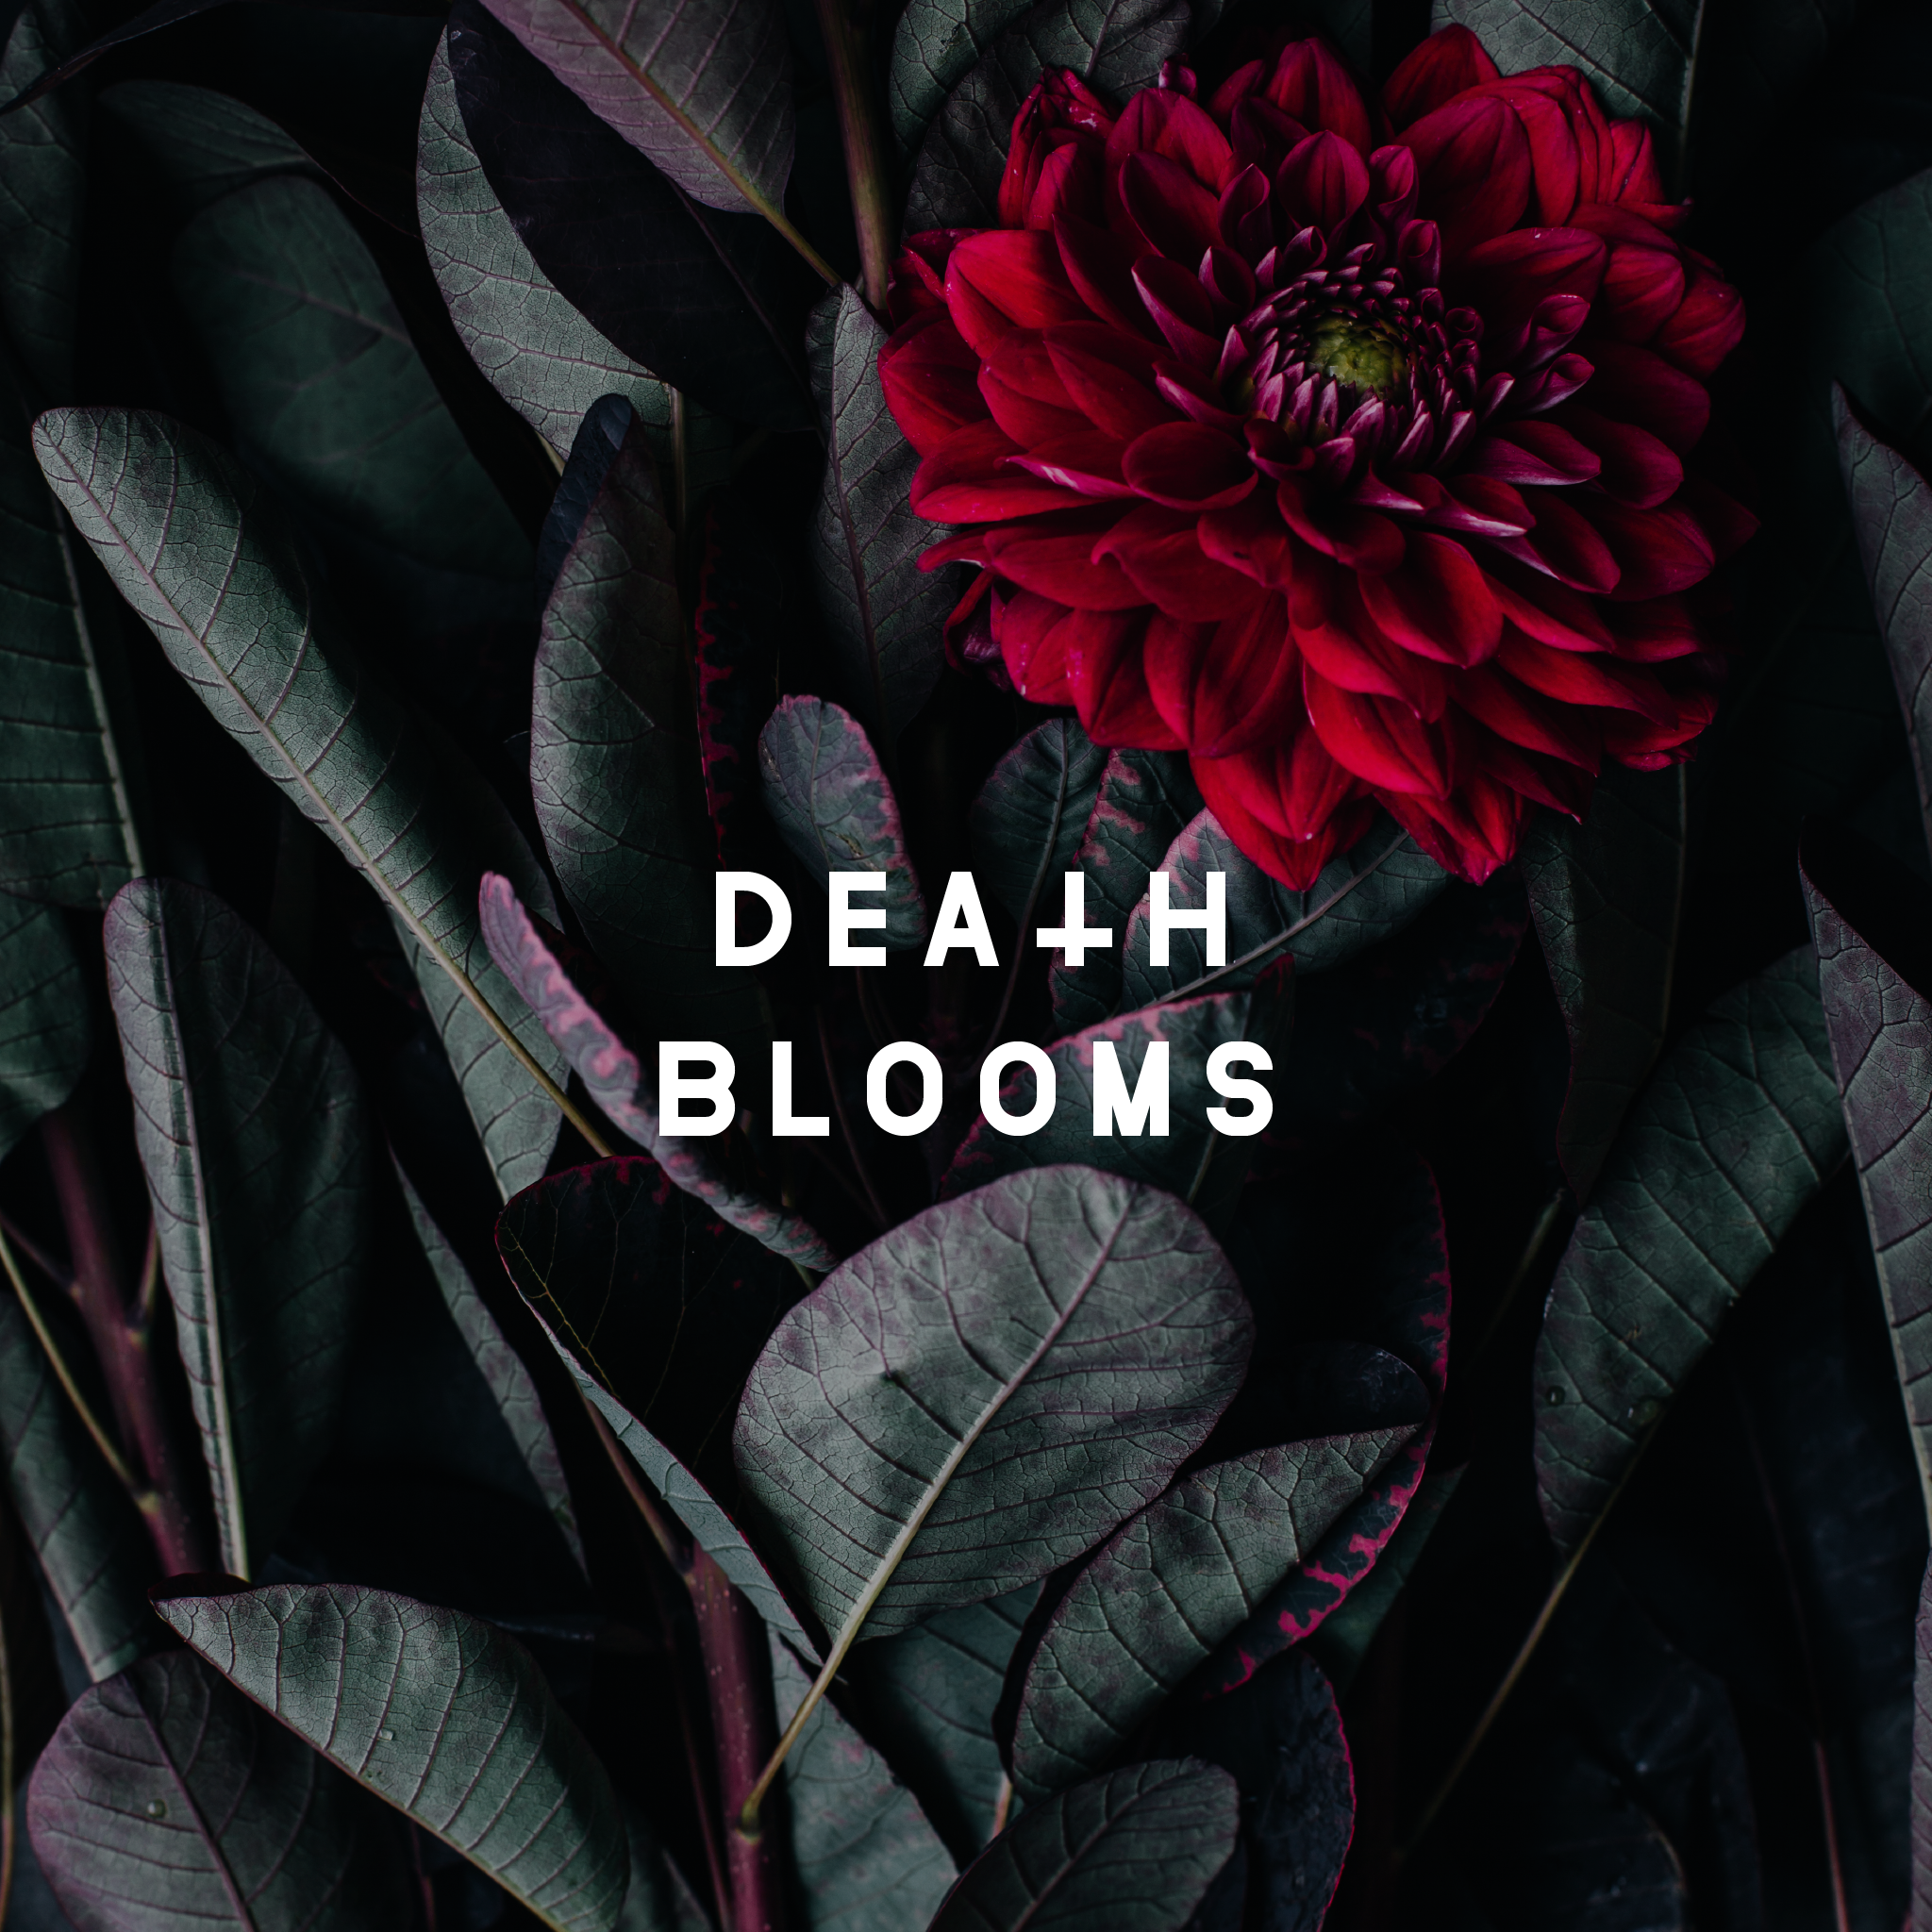 DEATH BLOOMS reveal new music video